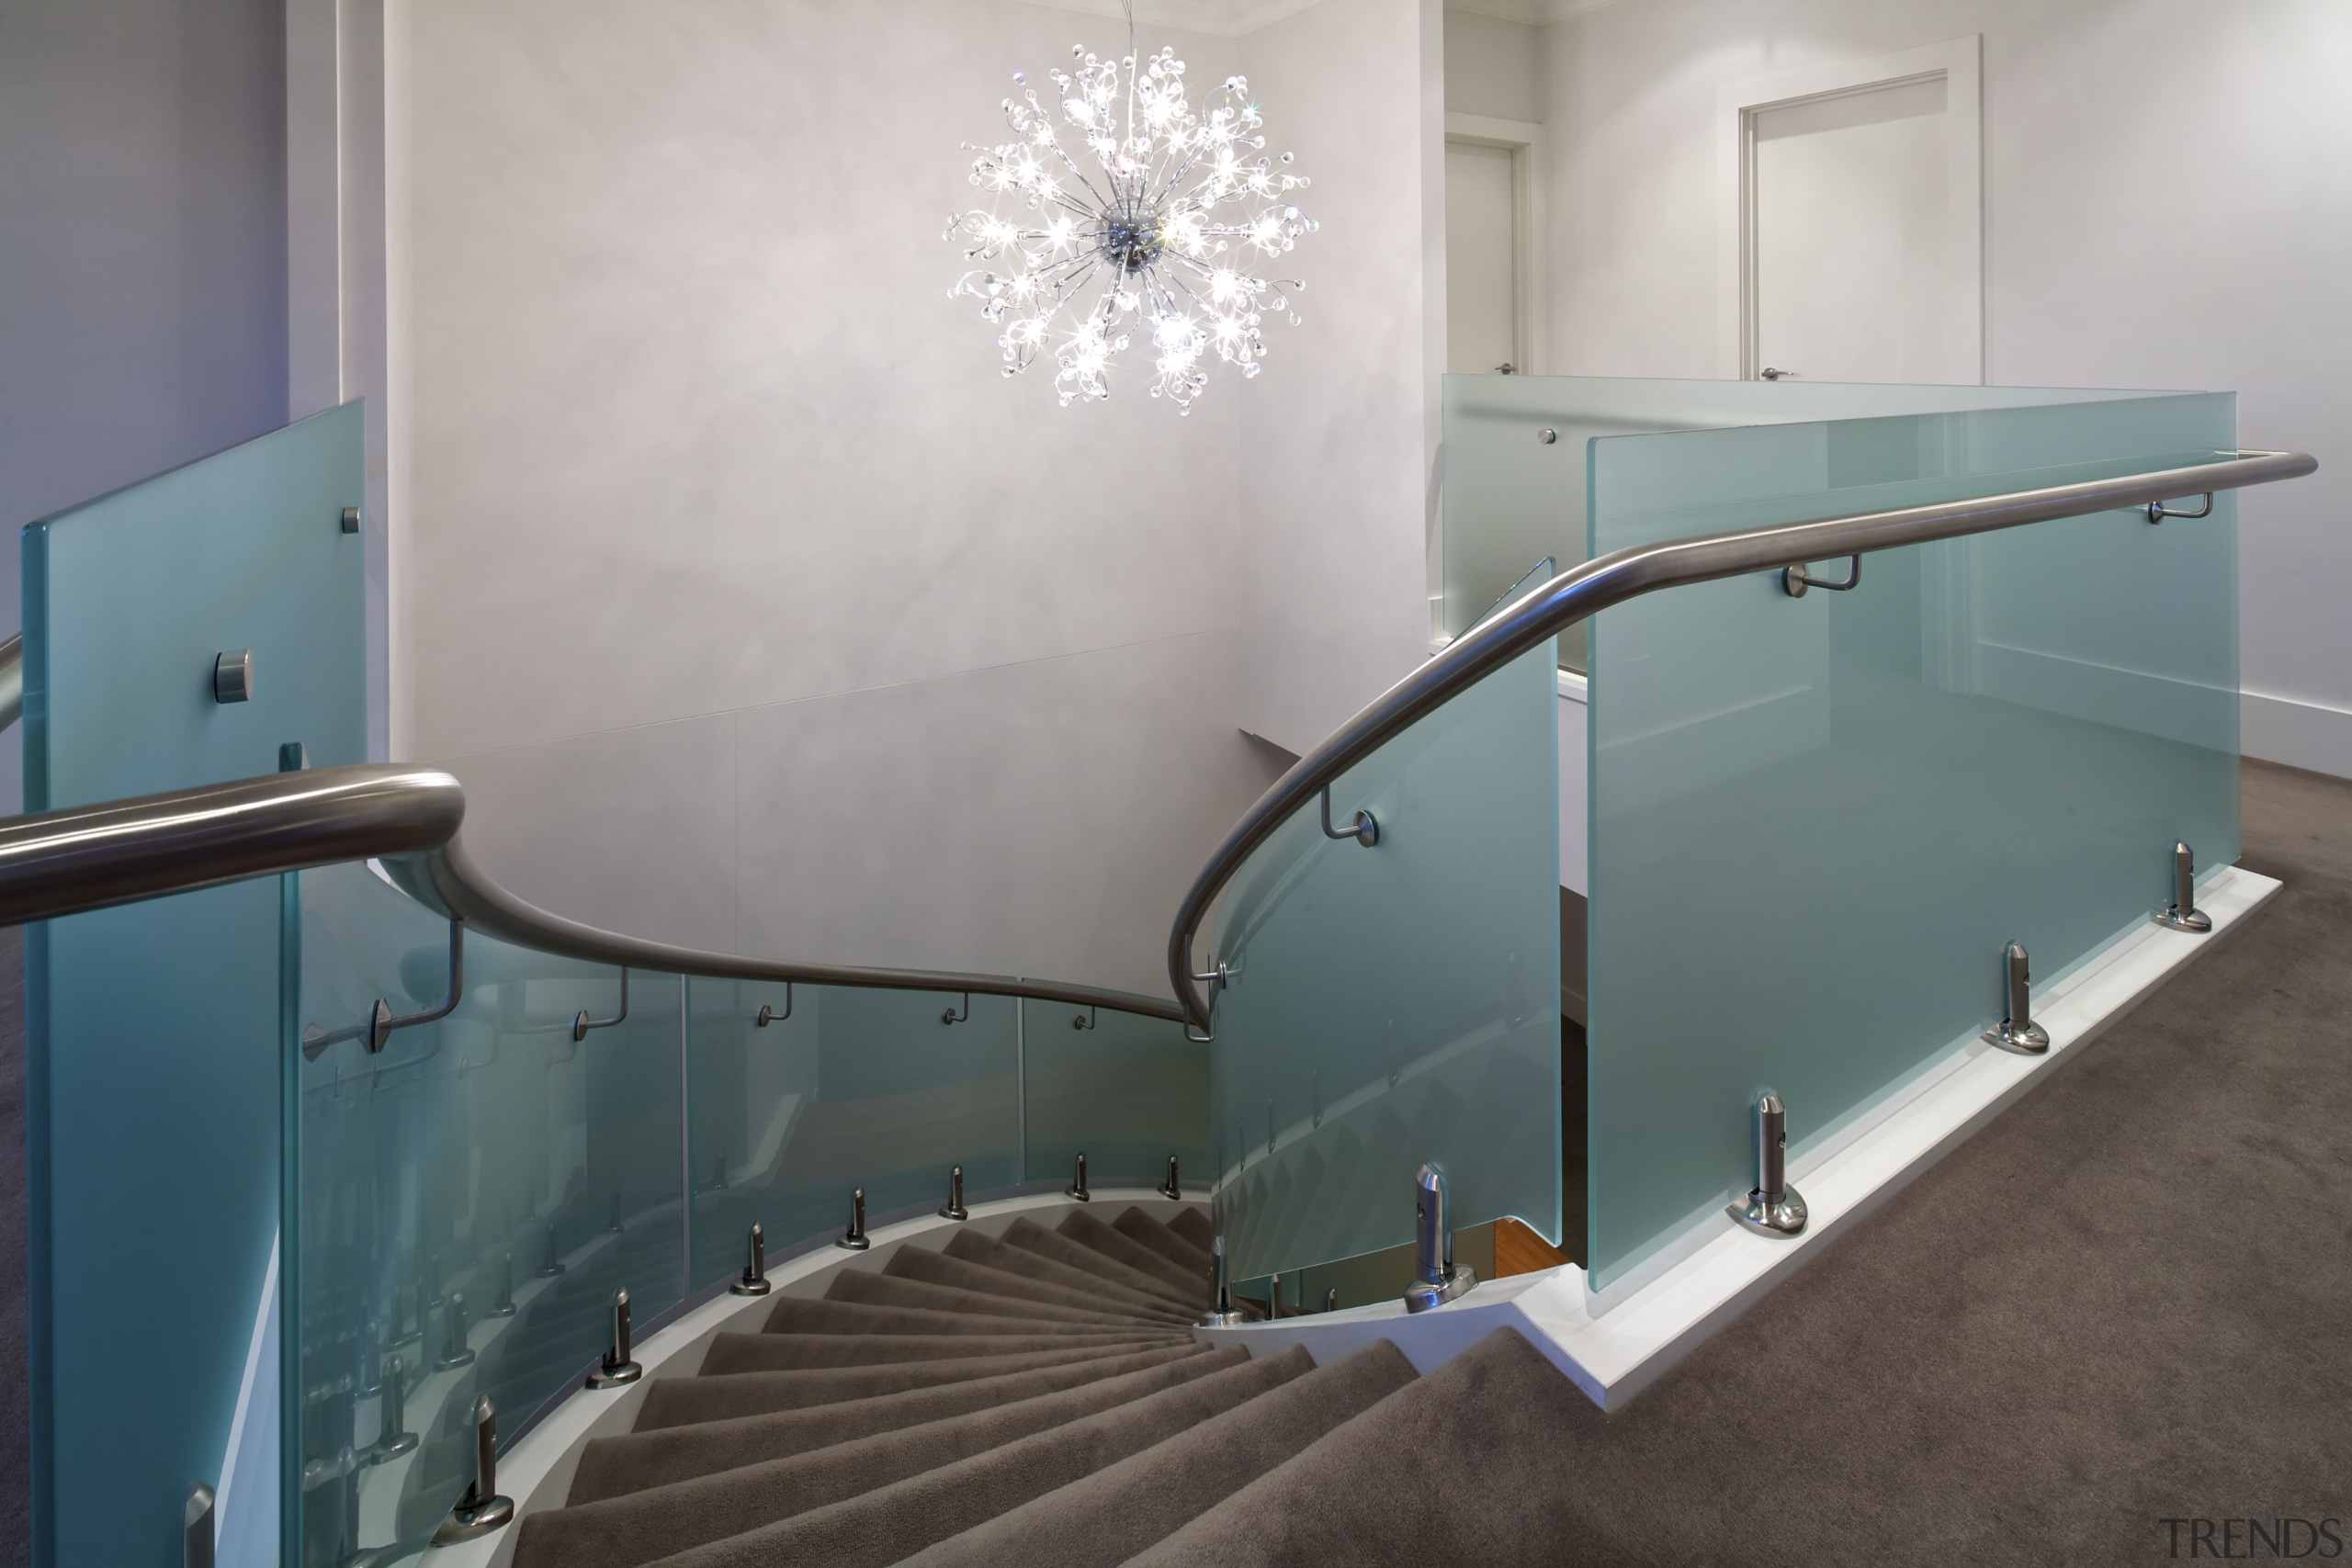 Glass safety rail around staircase. - Glass safety floor, glass, handrail, interior design, leisure centre, stairs, gray